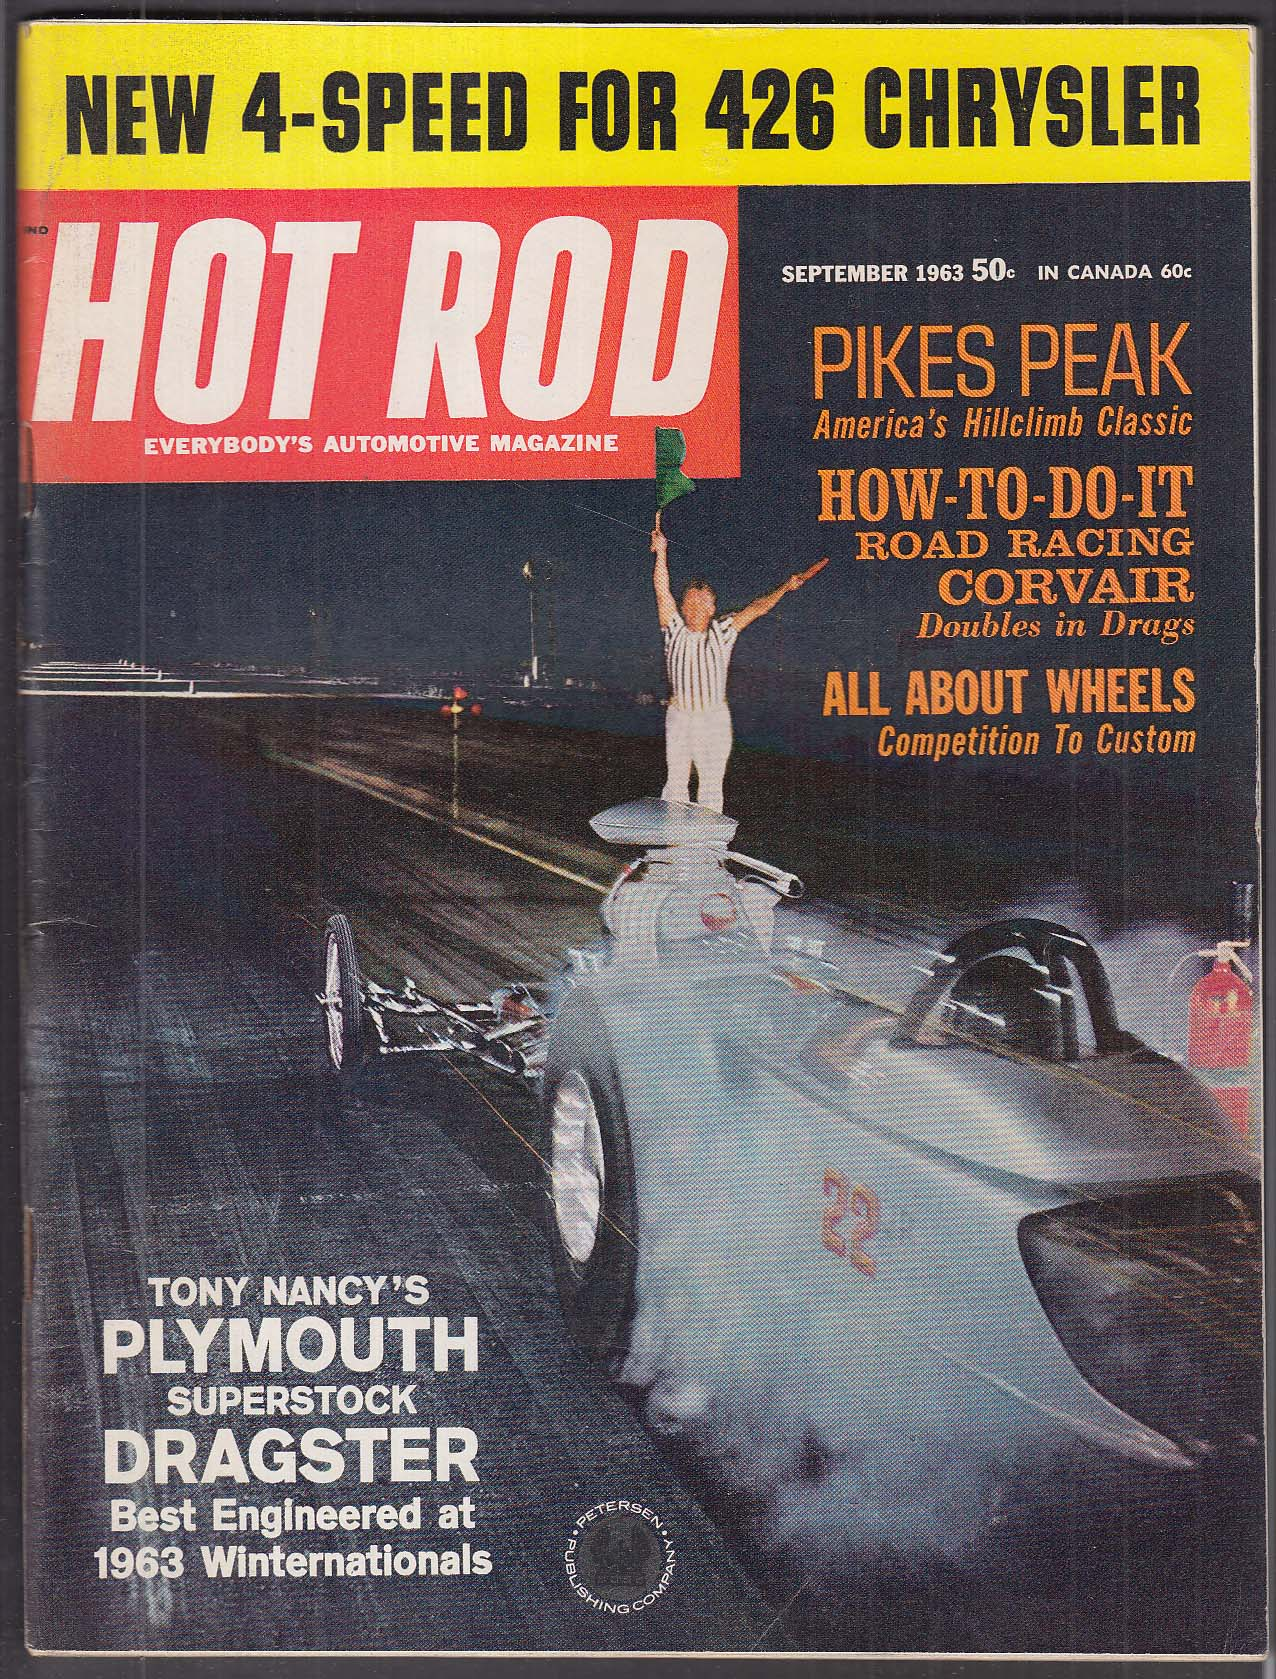 HOT ROD Pikes Peak Corvair Tony Nancy Plymouth Superstock 426 Chrysler + 9 1963